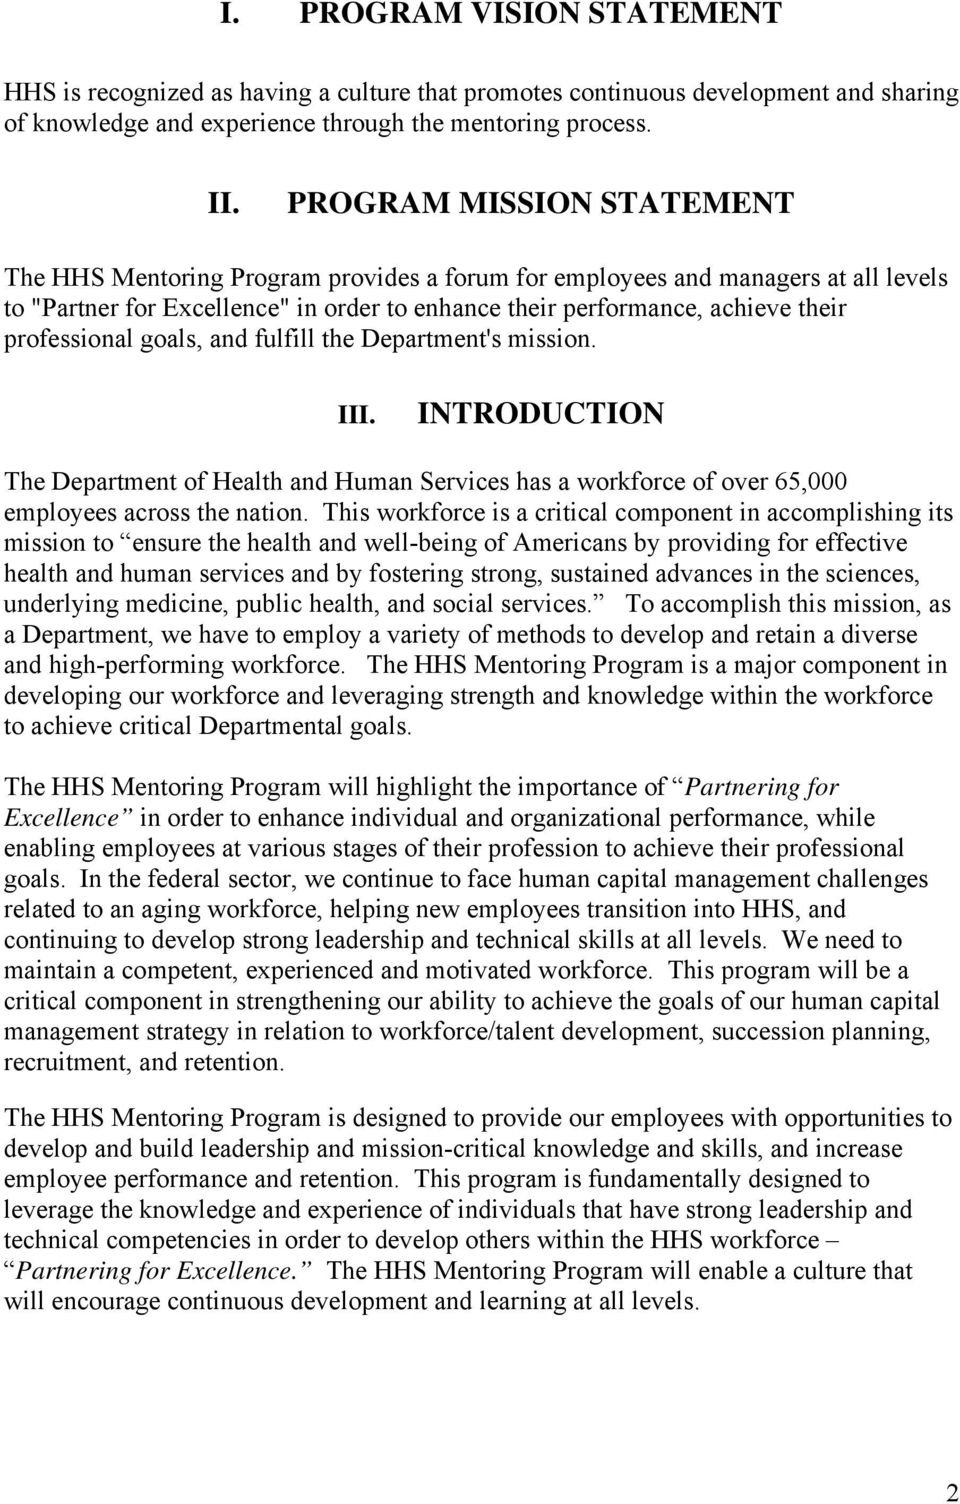 professional goals, and fulfill the Department's mission. III. INTRODUCTION The Department of Health and Human Services has a workforce of over 65,000 employees across the nation.